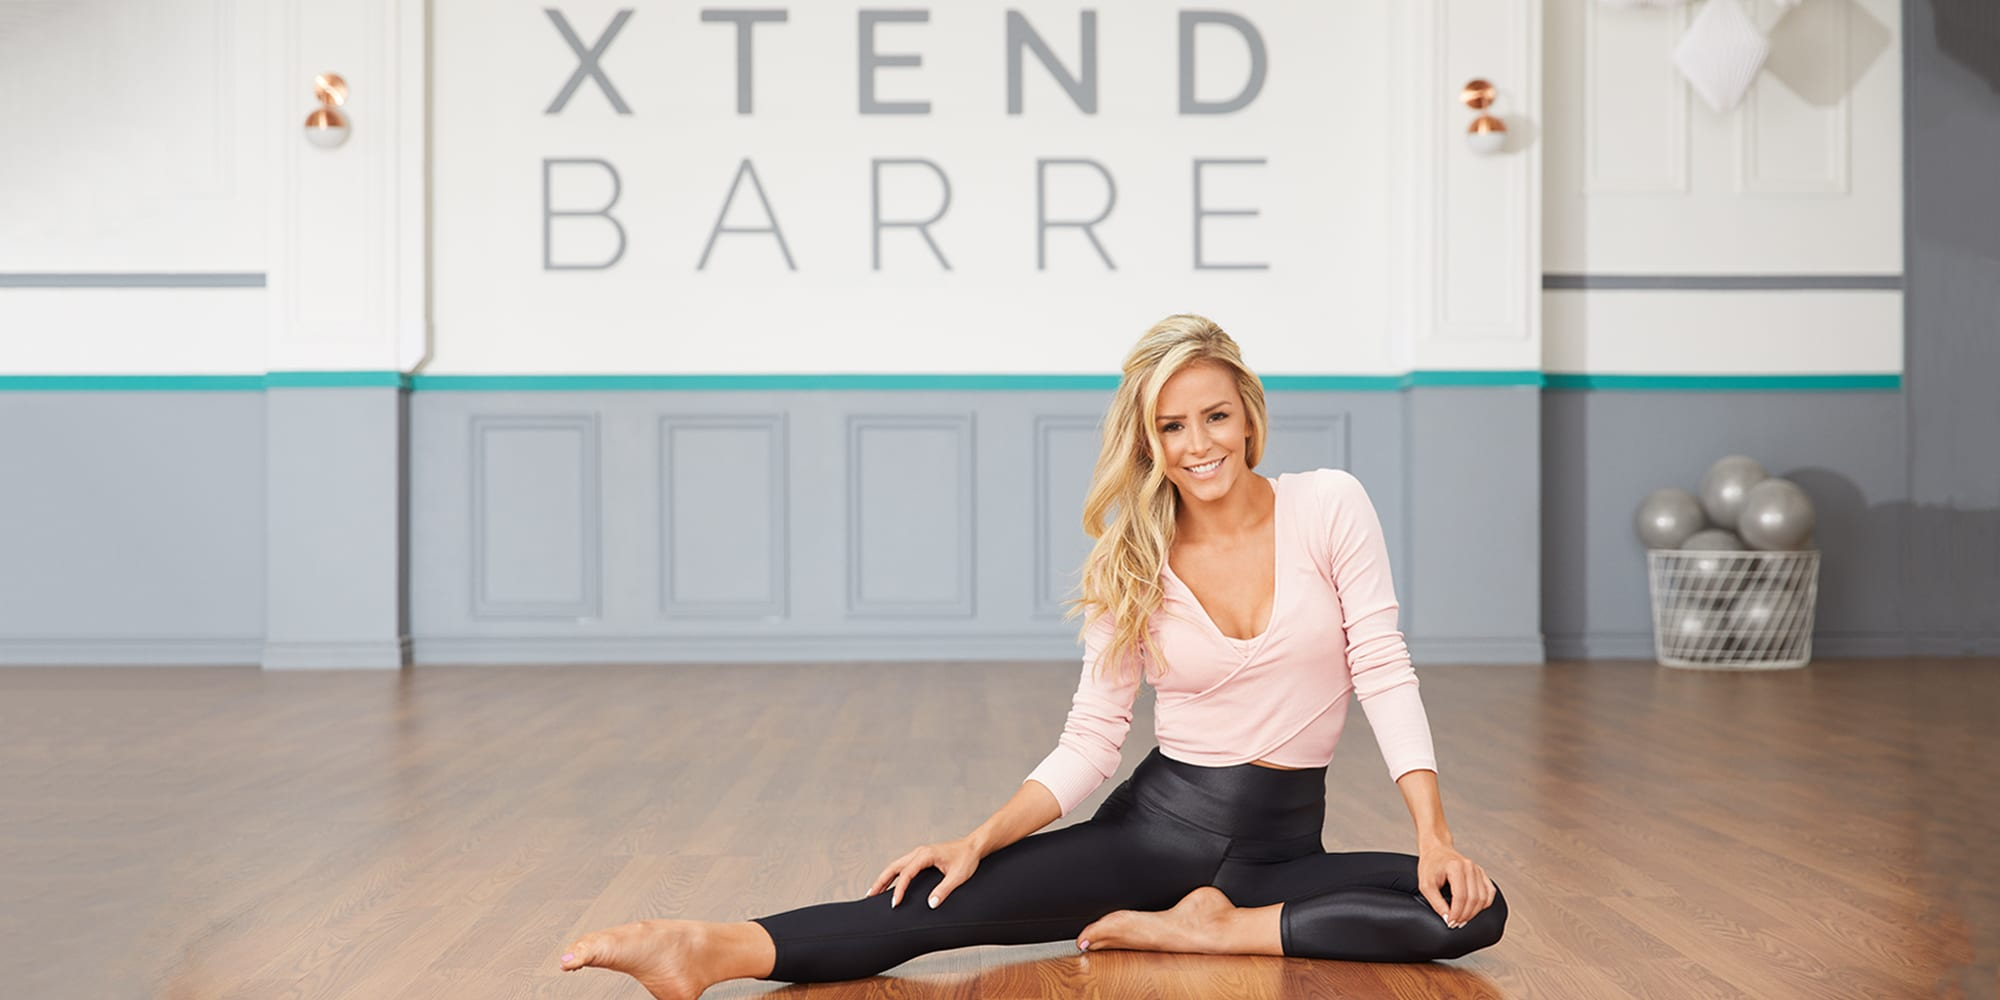 Xtend Barre: The At-Home Barre Program to Help You Sculpt a Lean, Strong Physique